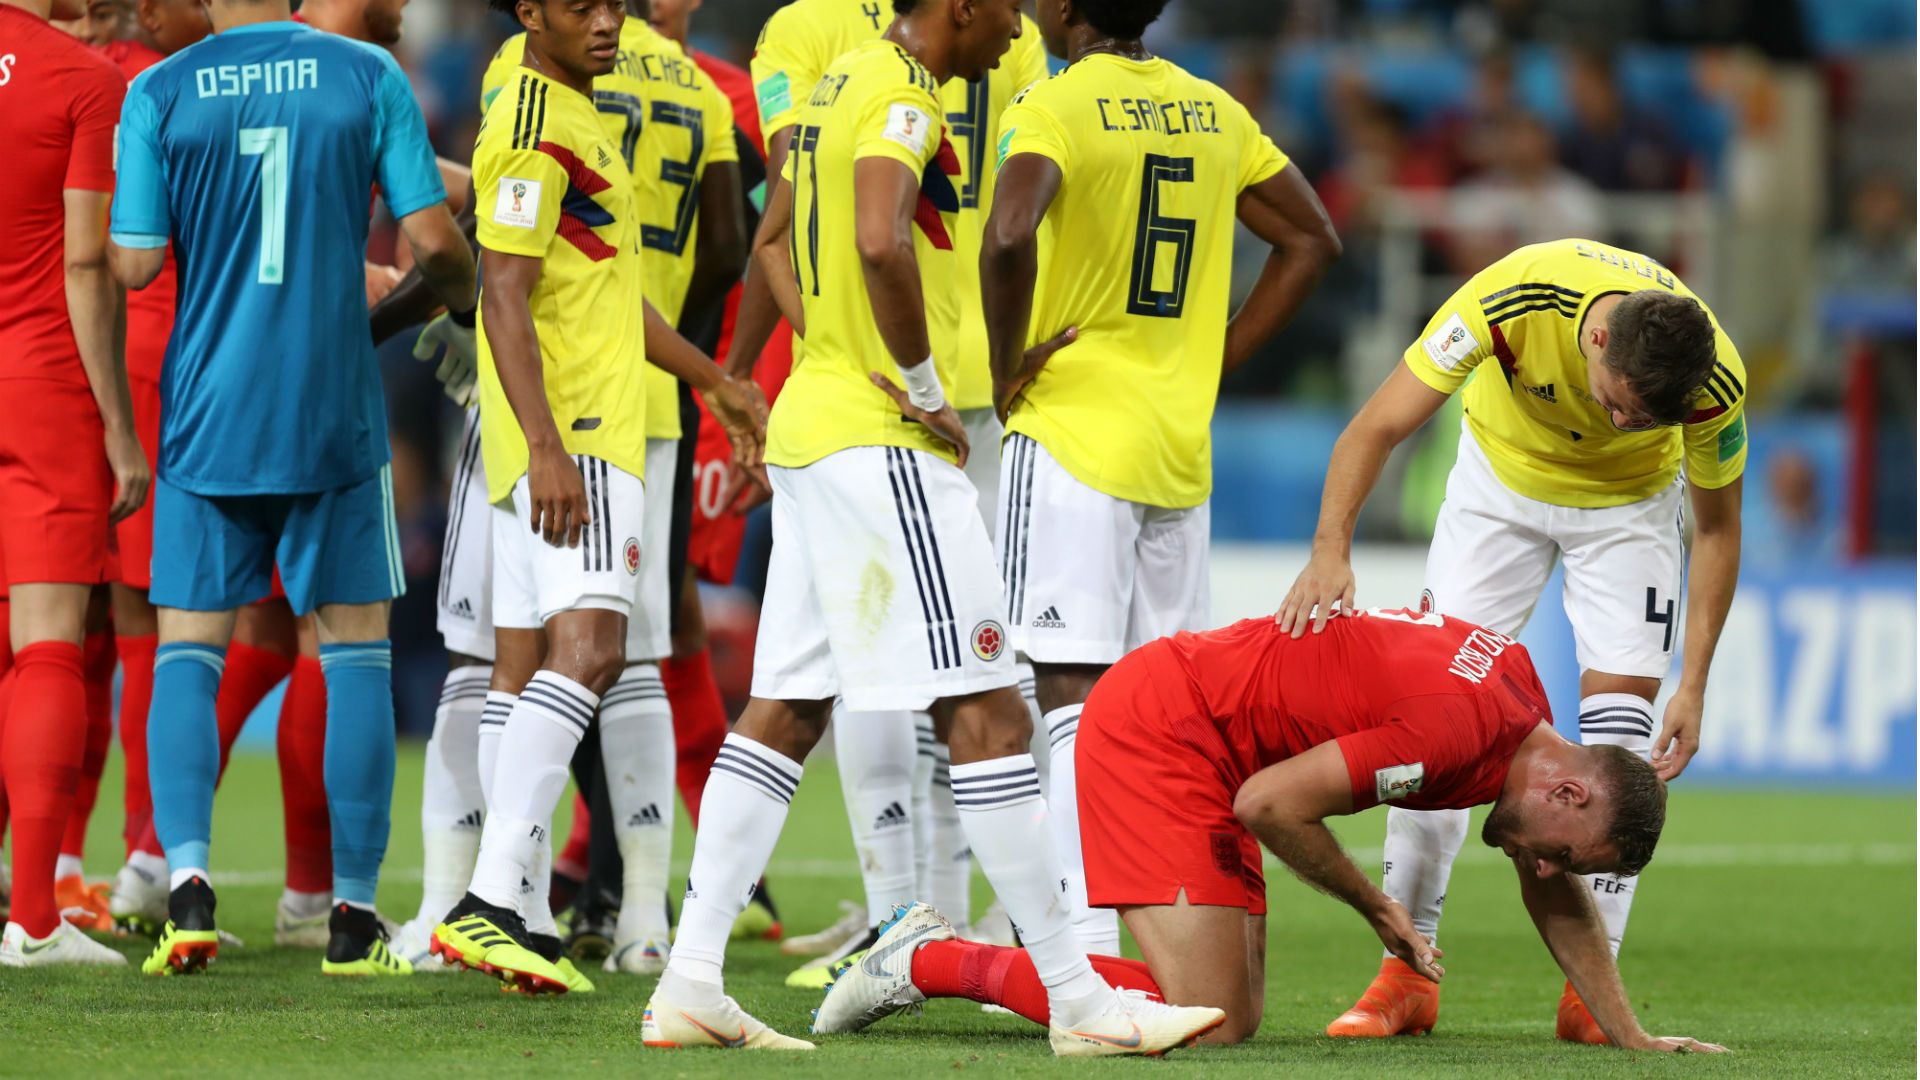 England eliminates Colombia on penalty kicks